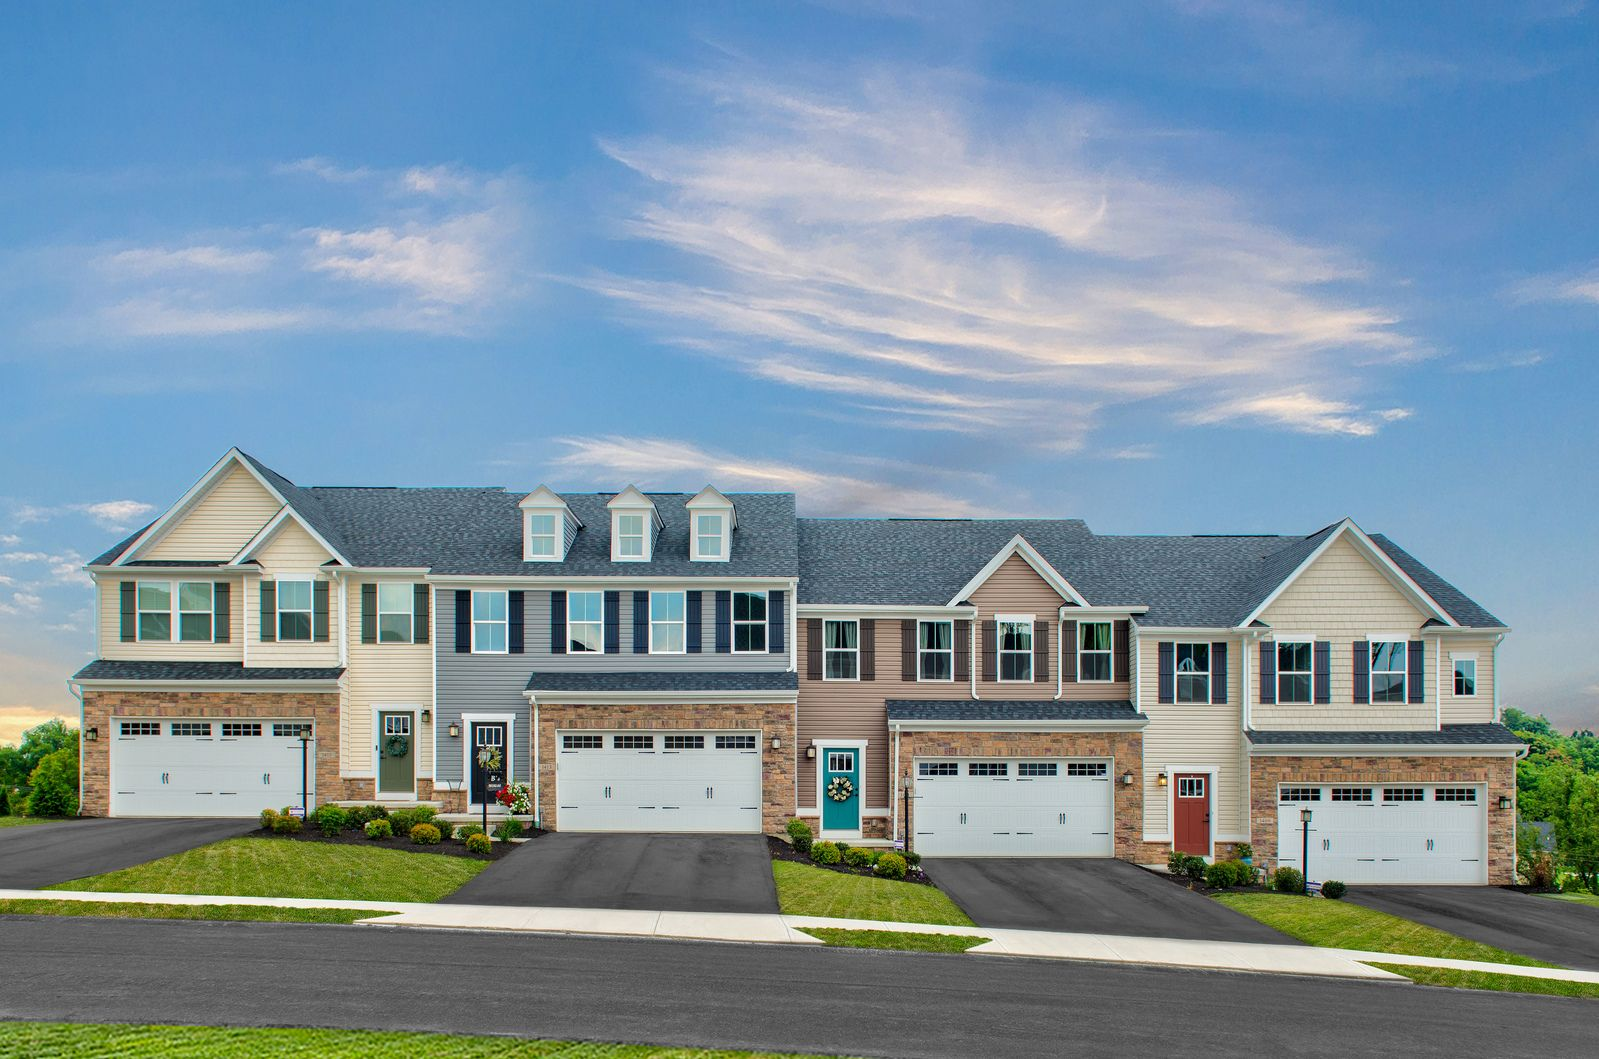 Welcome to Sewickley Crossing Townhomes:The only new homes in Ohio Twp located 1 mile from the Mt. Nebo Rd. & I-79 intersection offering 1st floor owner's bedroom & low maintenance lifestyle.Click here toschedule an appointment.